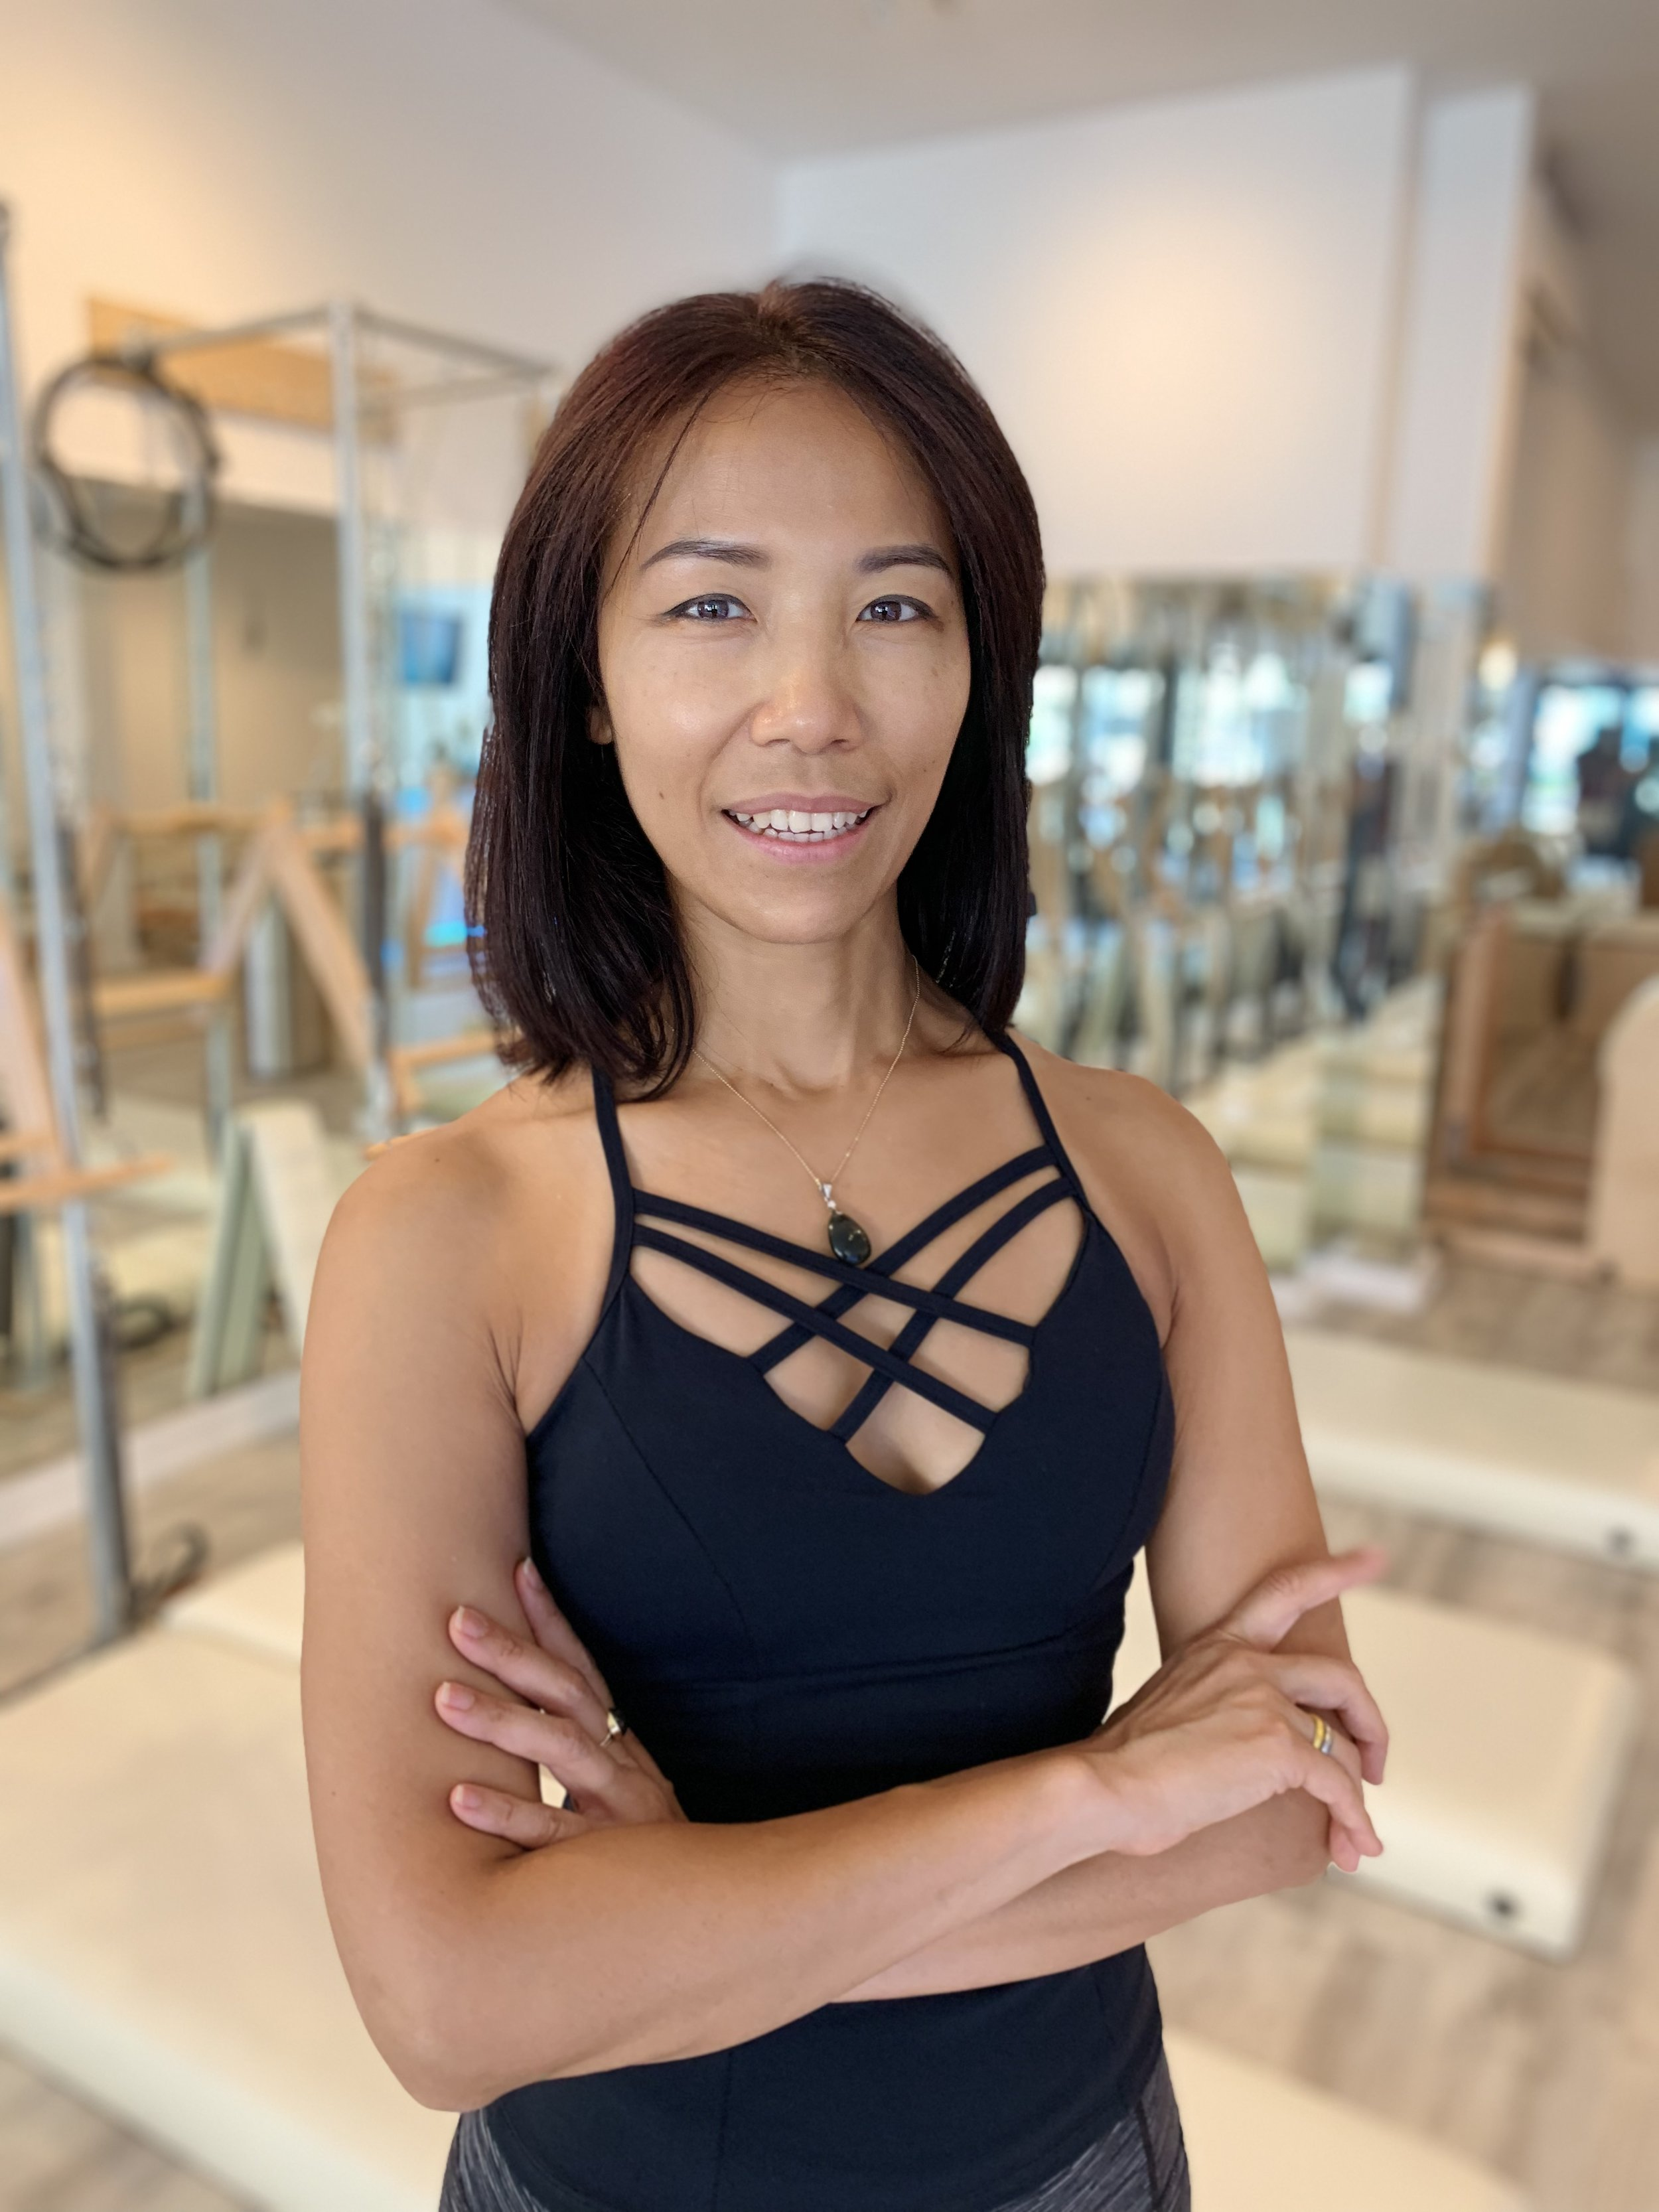 Jane   Jane was always curious to find ways to restore balance for herself and others. She has a passion for helping others heal and returning to a balanced life. She currently teaches Pilates and is a wellness coach.